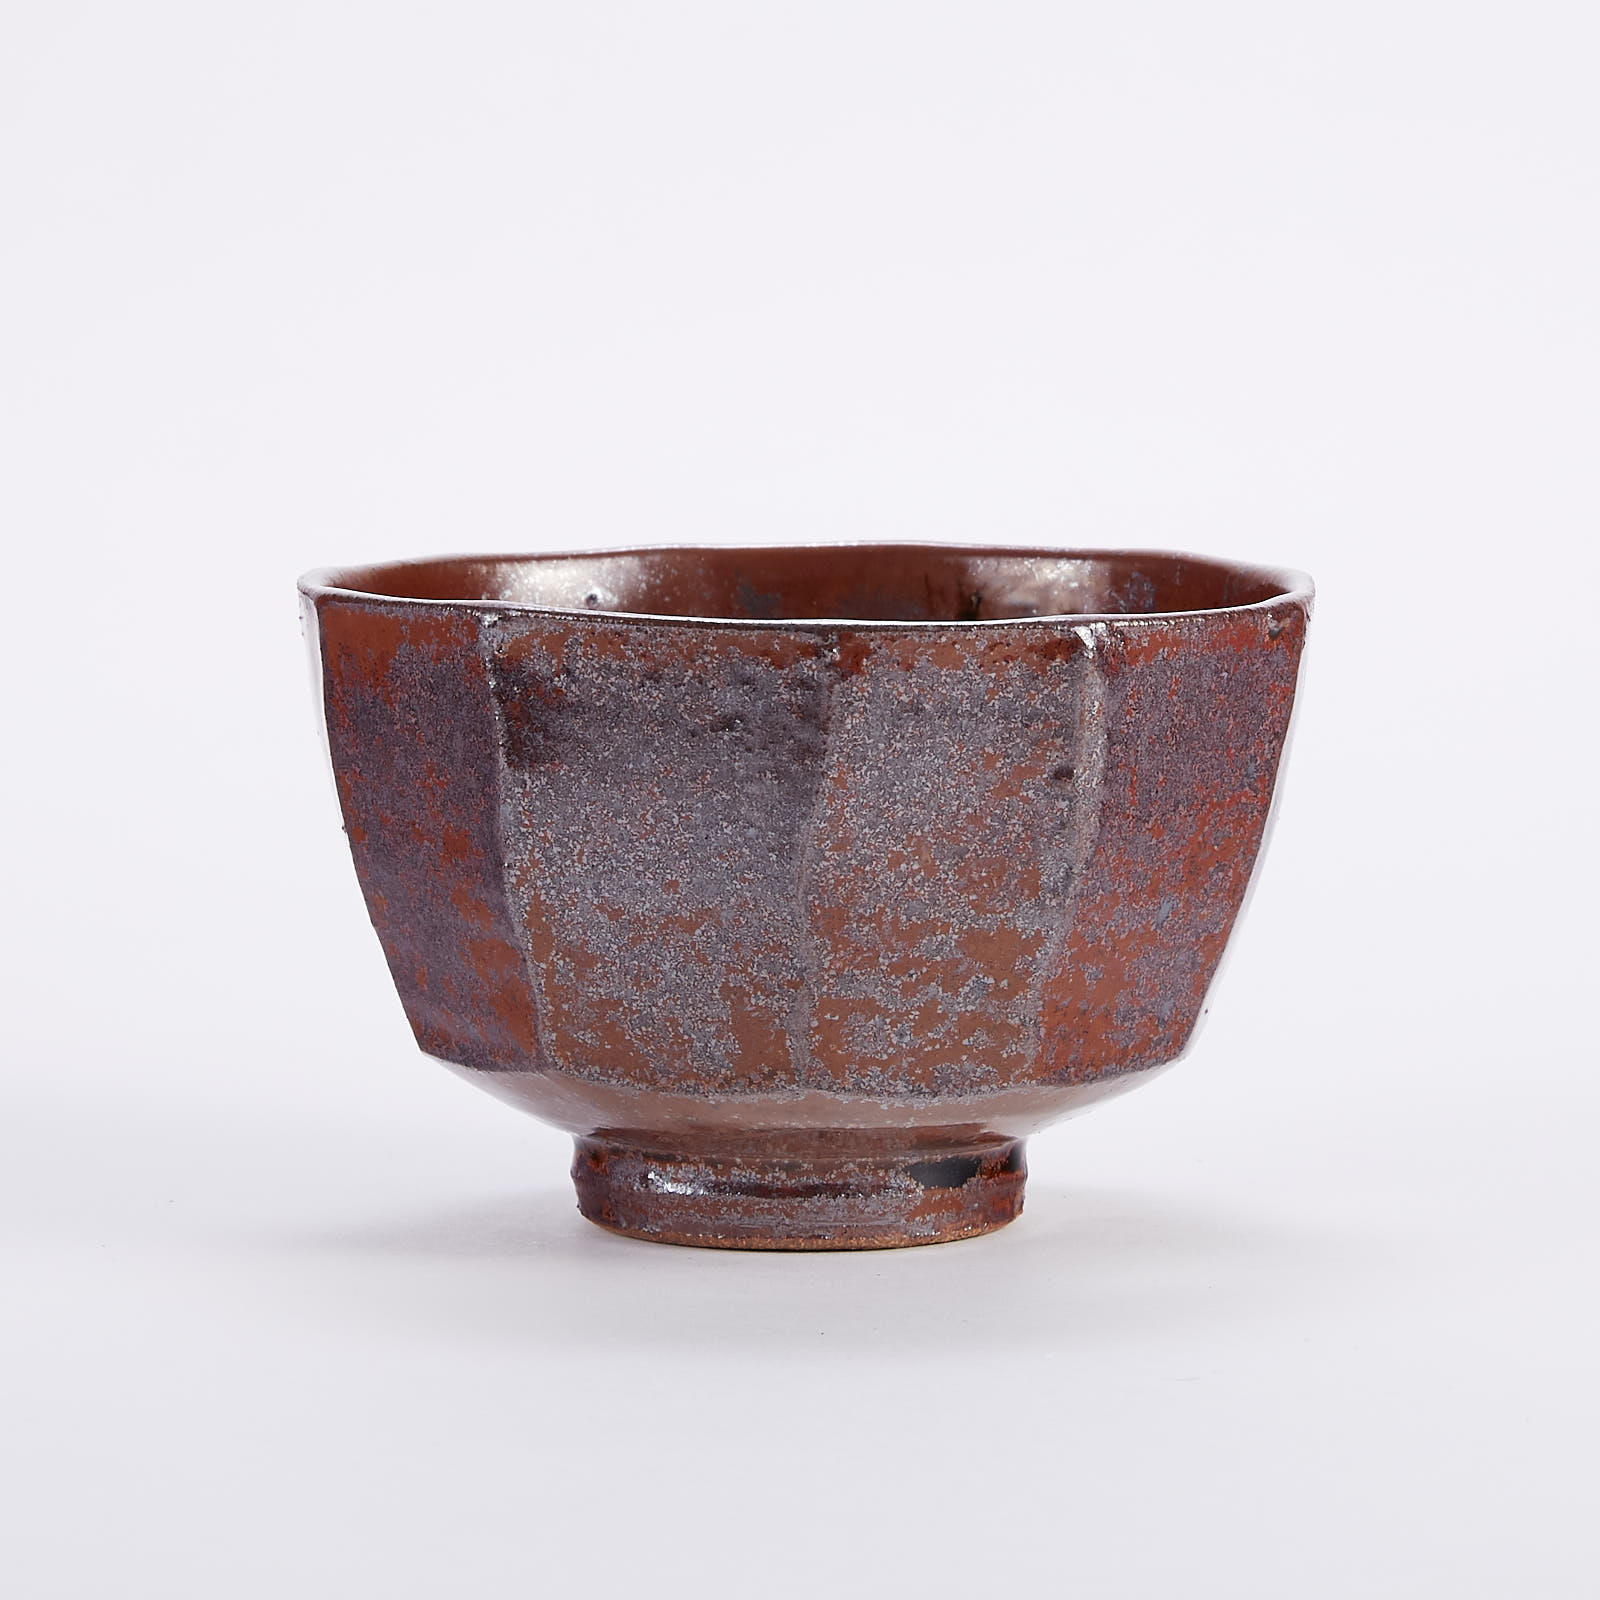 Lot 002: Warren MacKenzie Studio Pottery Cut-Sided Copper Red Bowl